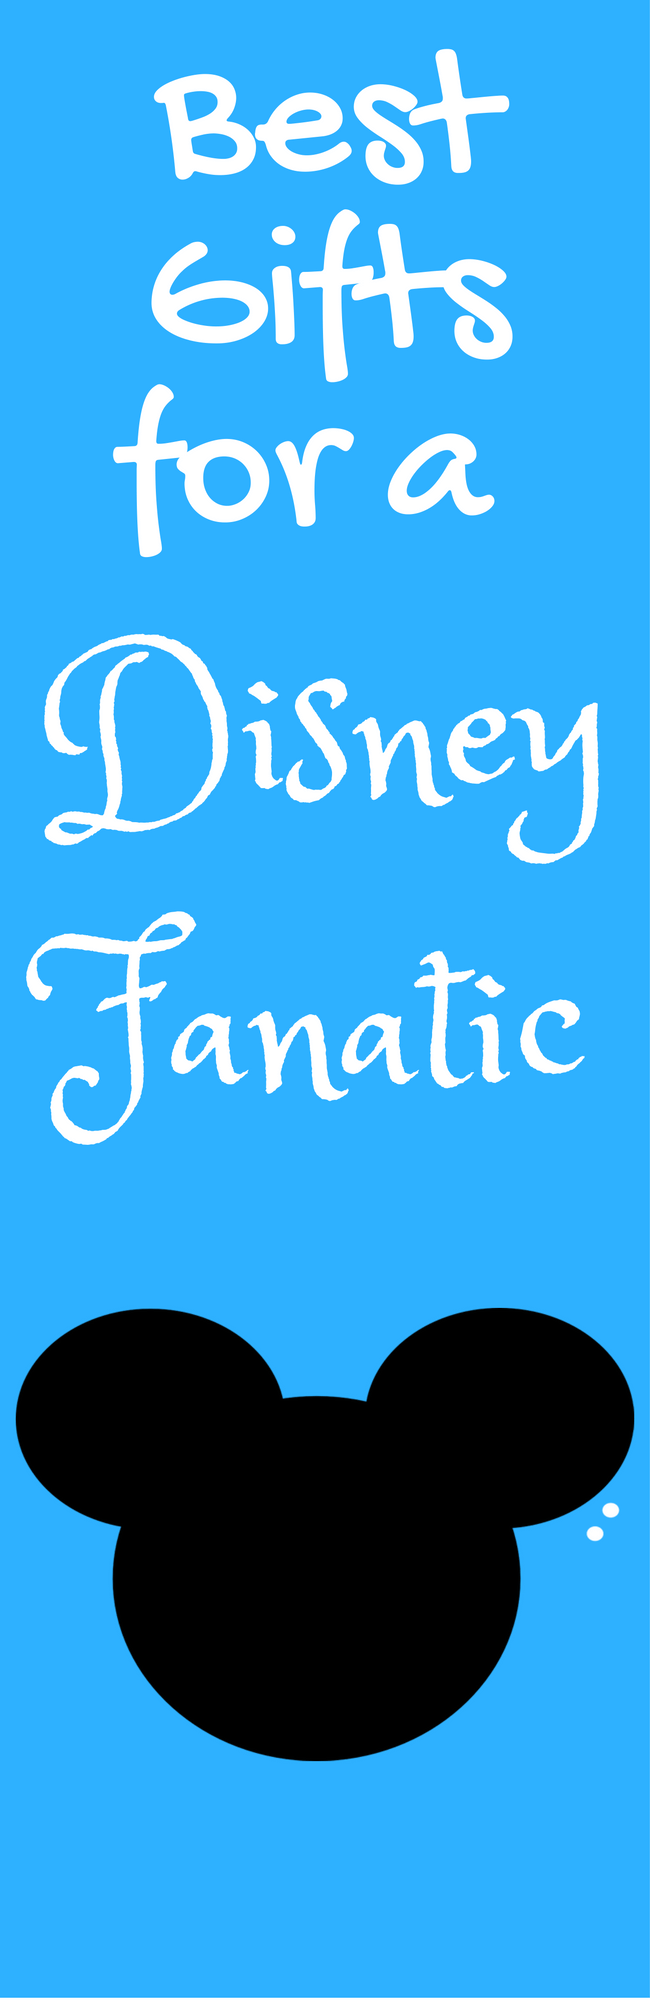 The best gifts for a Disney fanatic! via @clarkscondensed